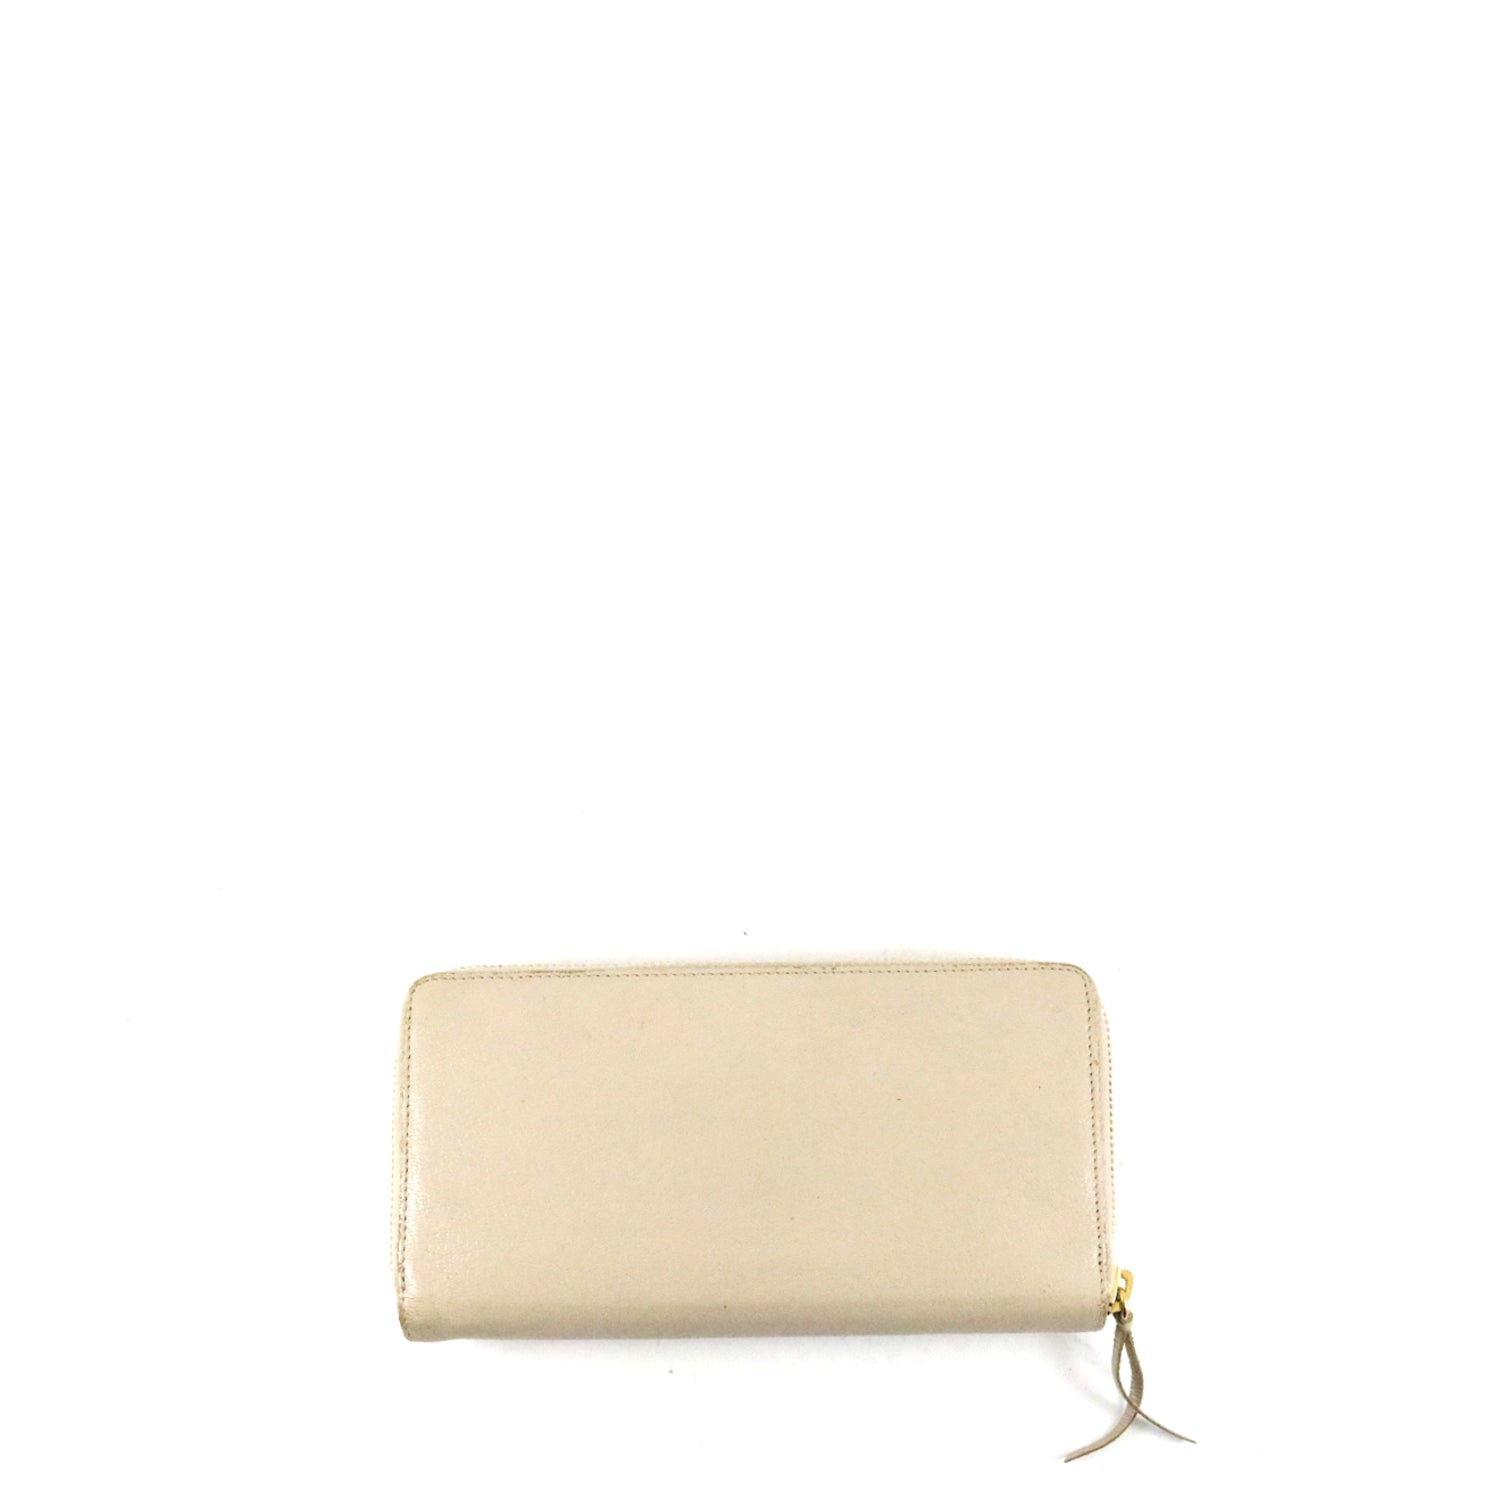 Chevre Metallic Edge Gold Continental Wallet